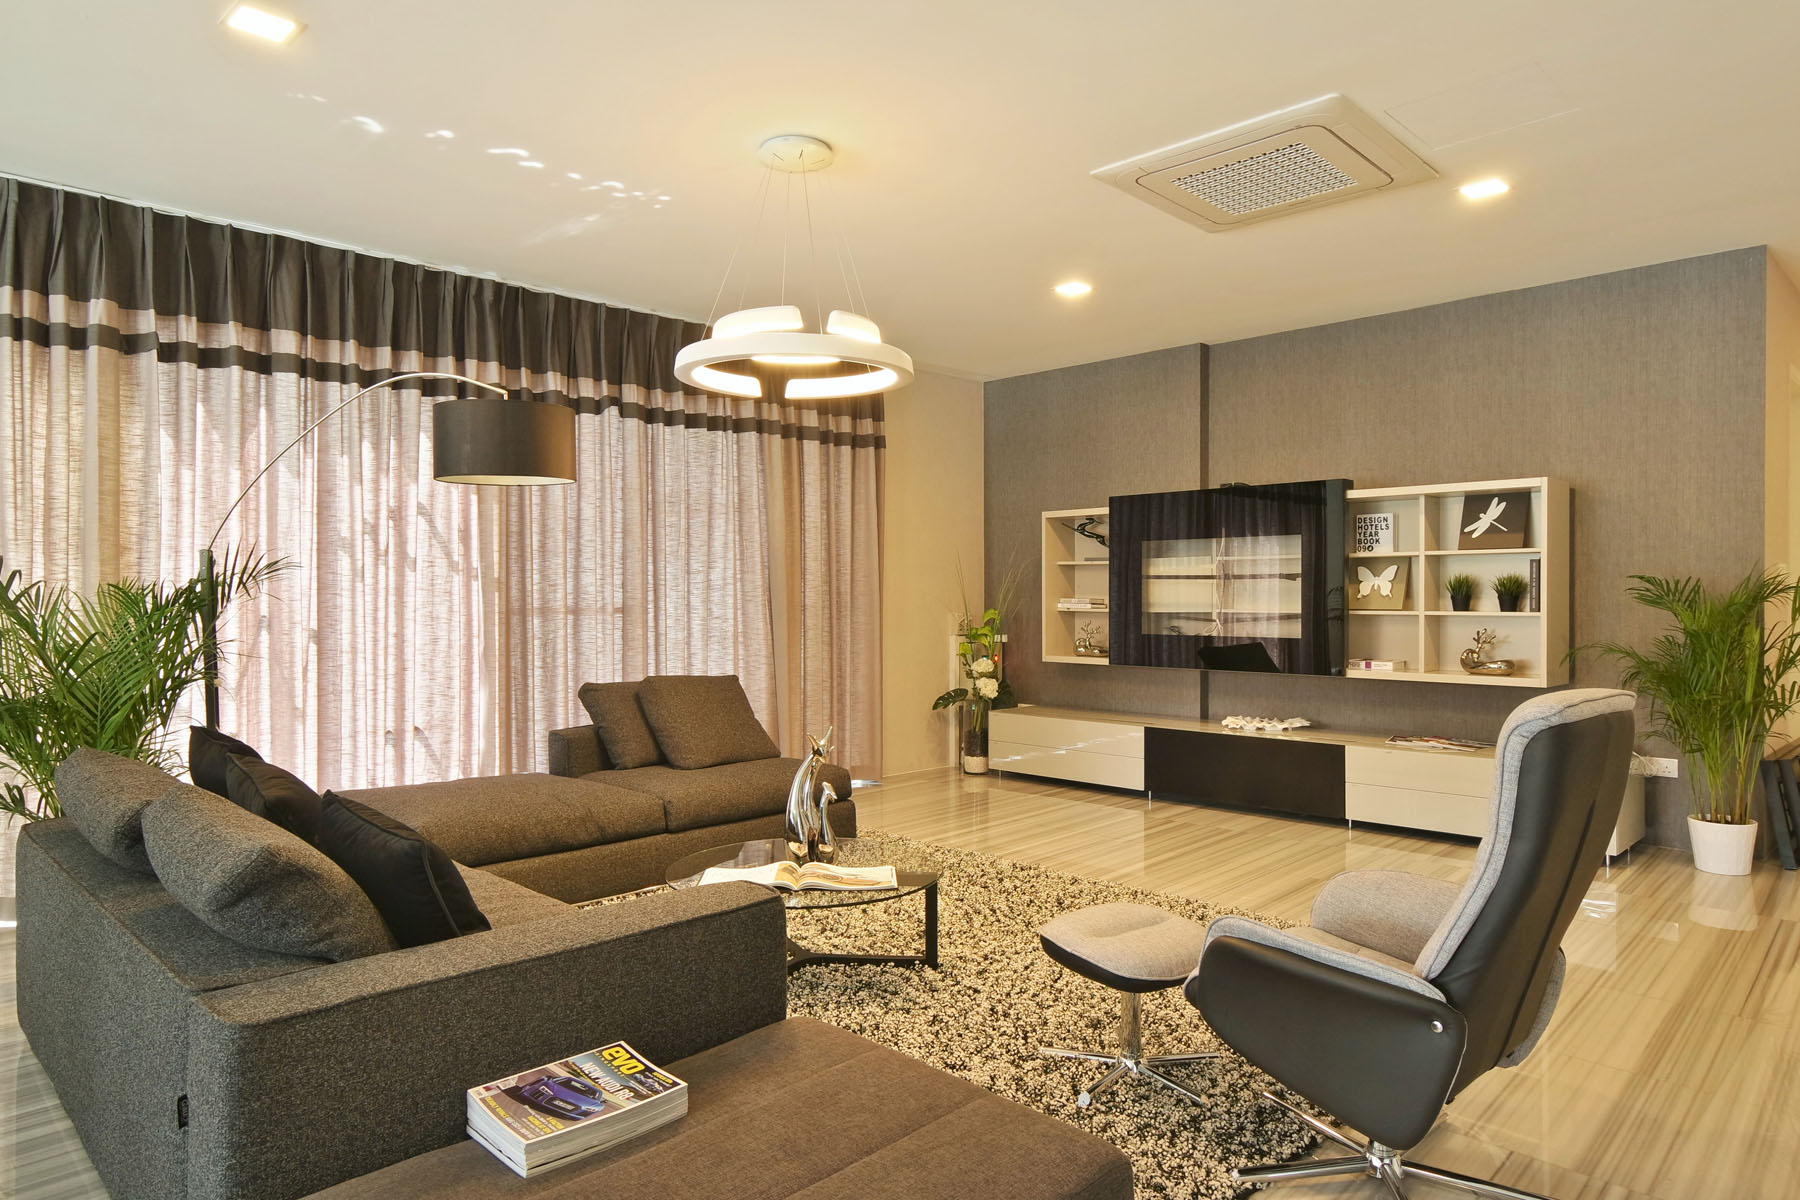 Living Room Decoration And Design Company Singapore